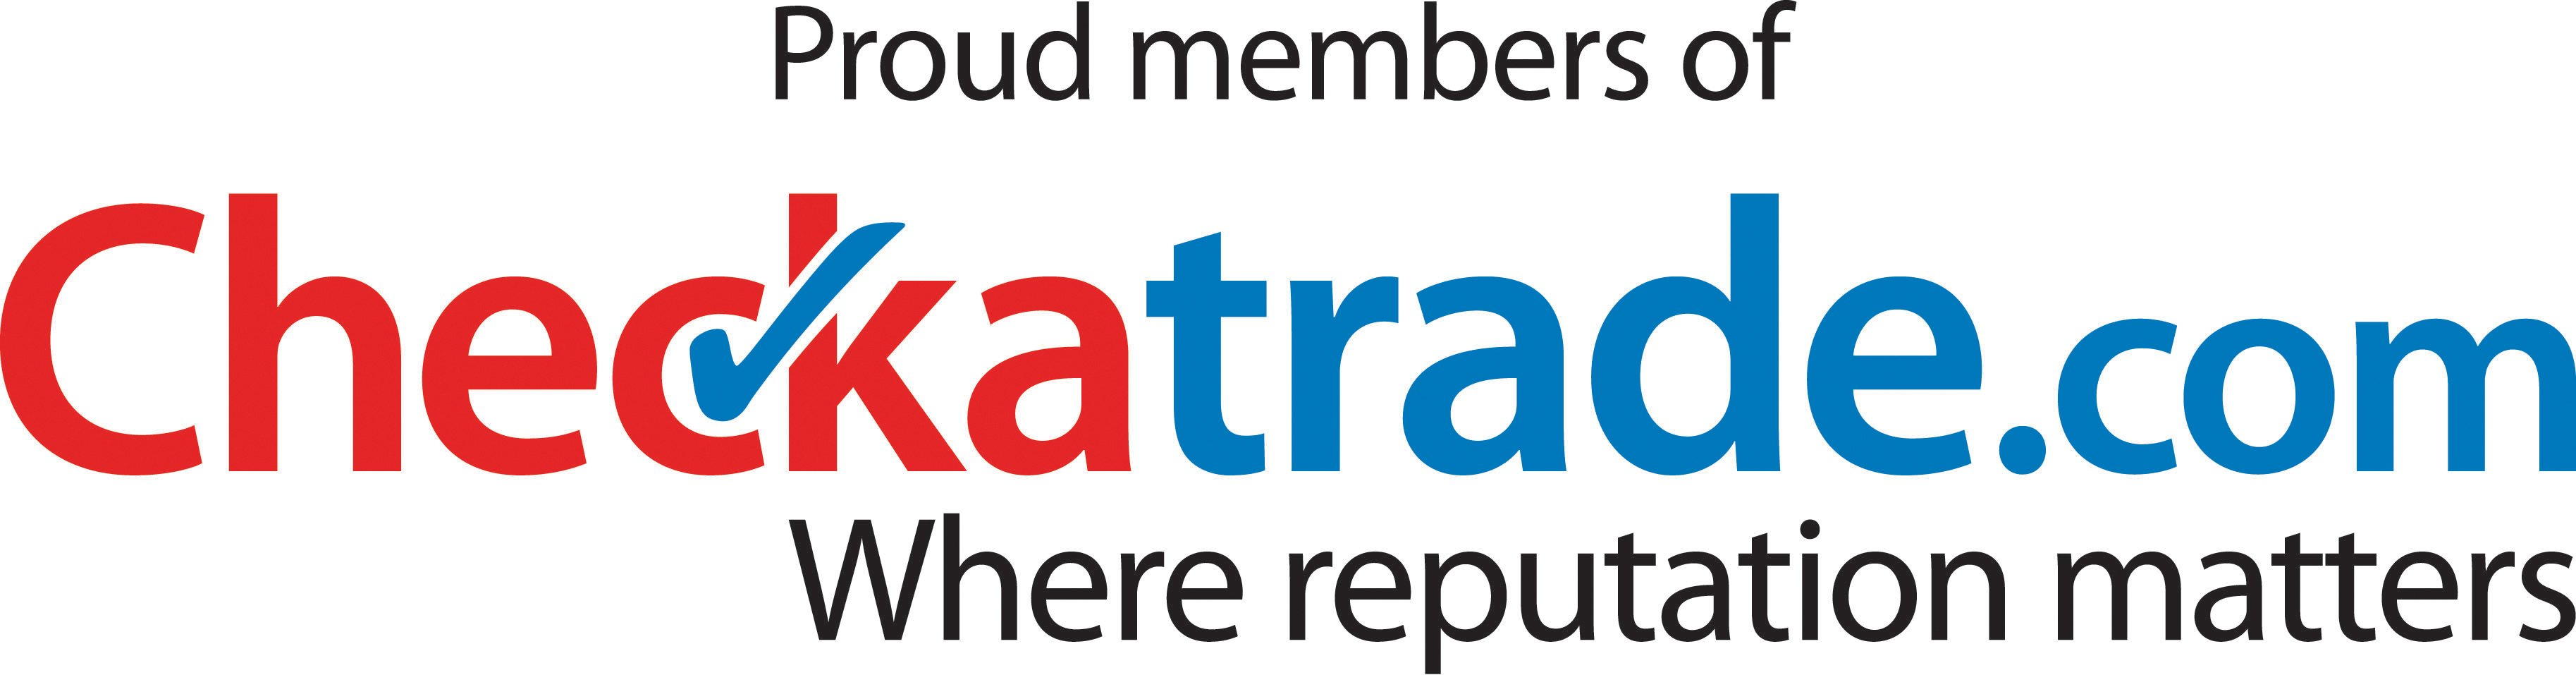 checkatrade icon